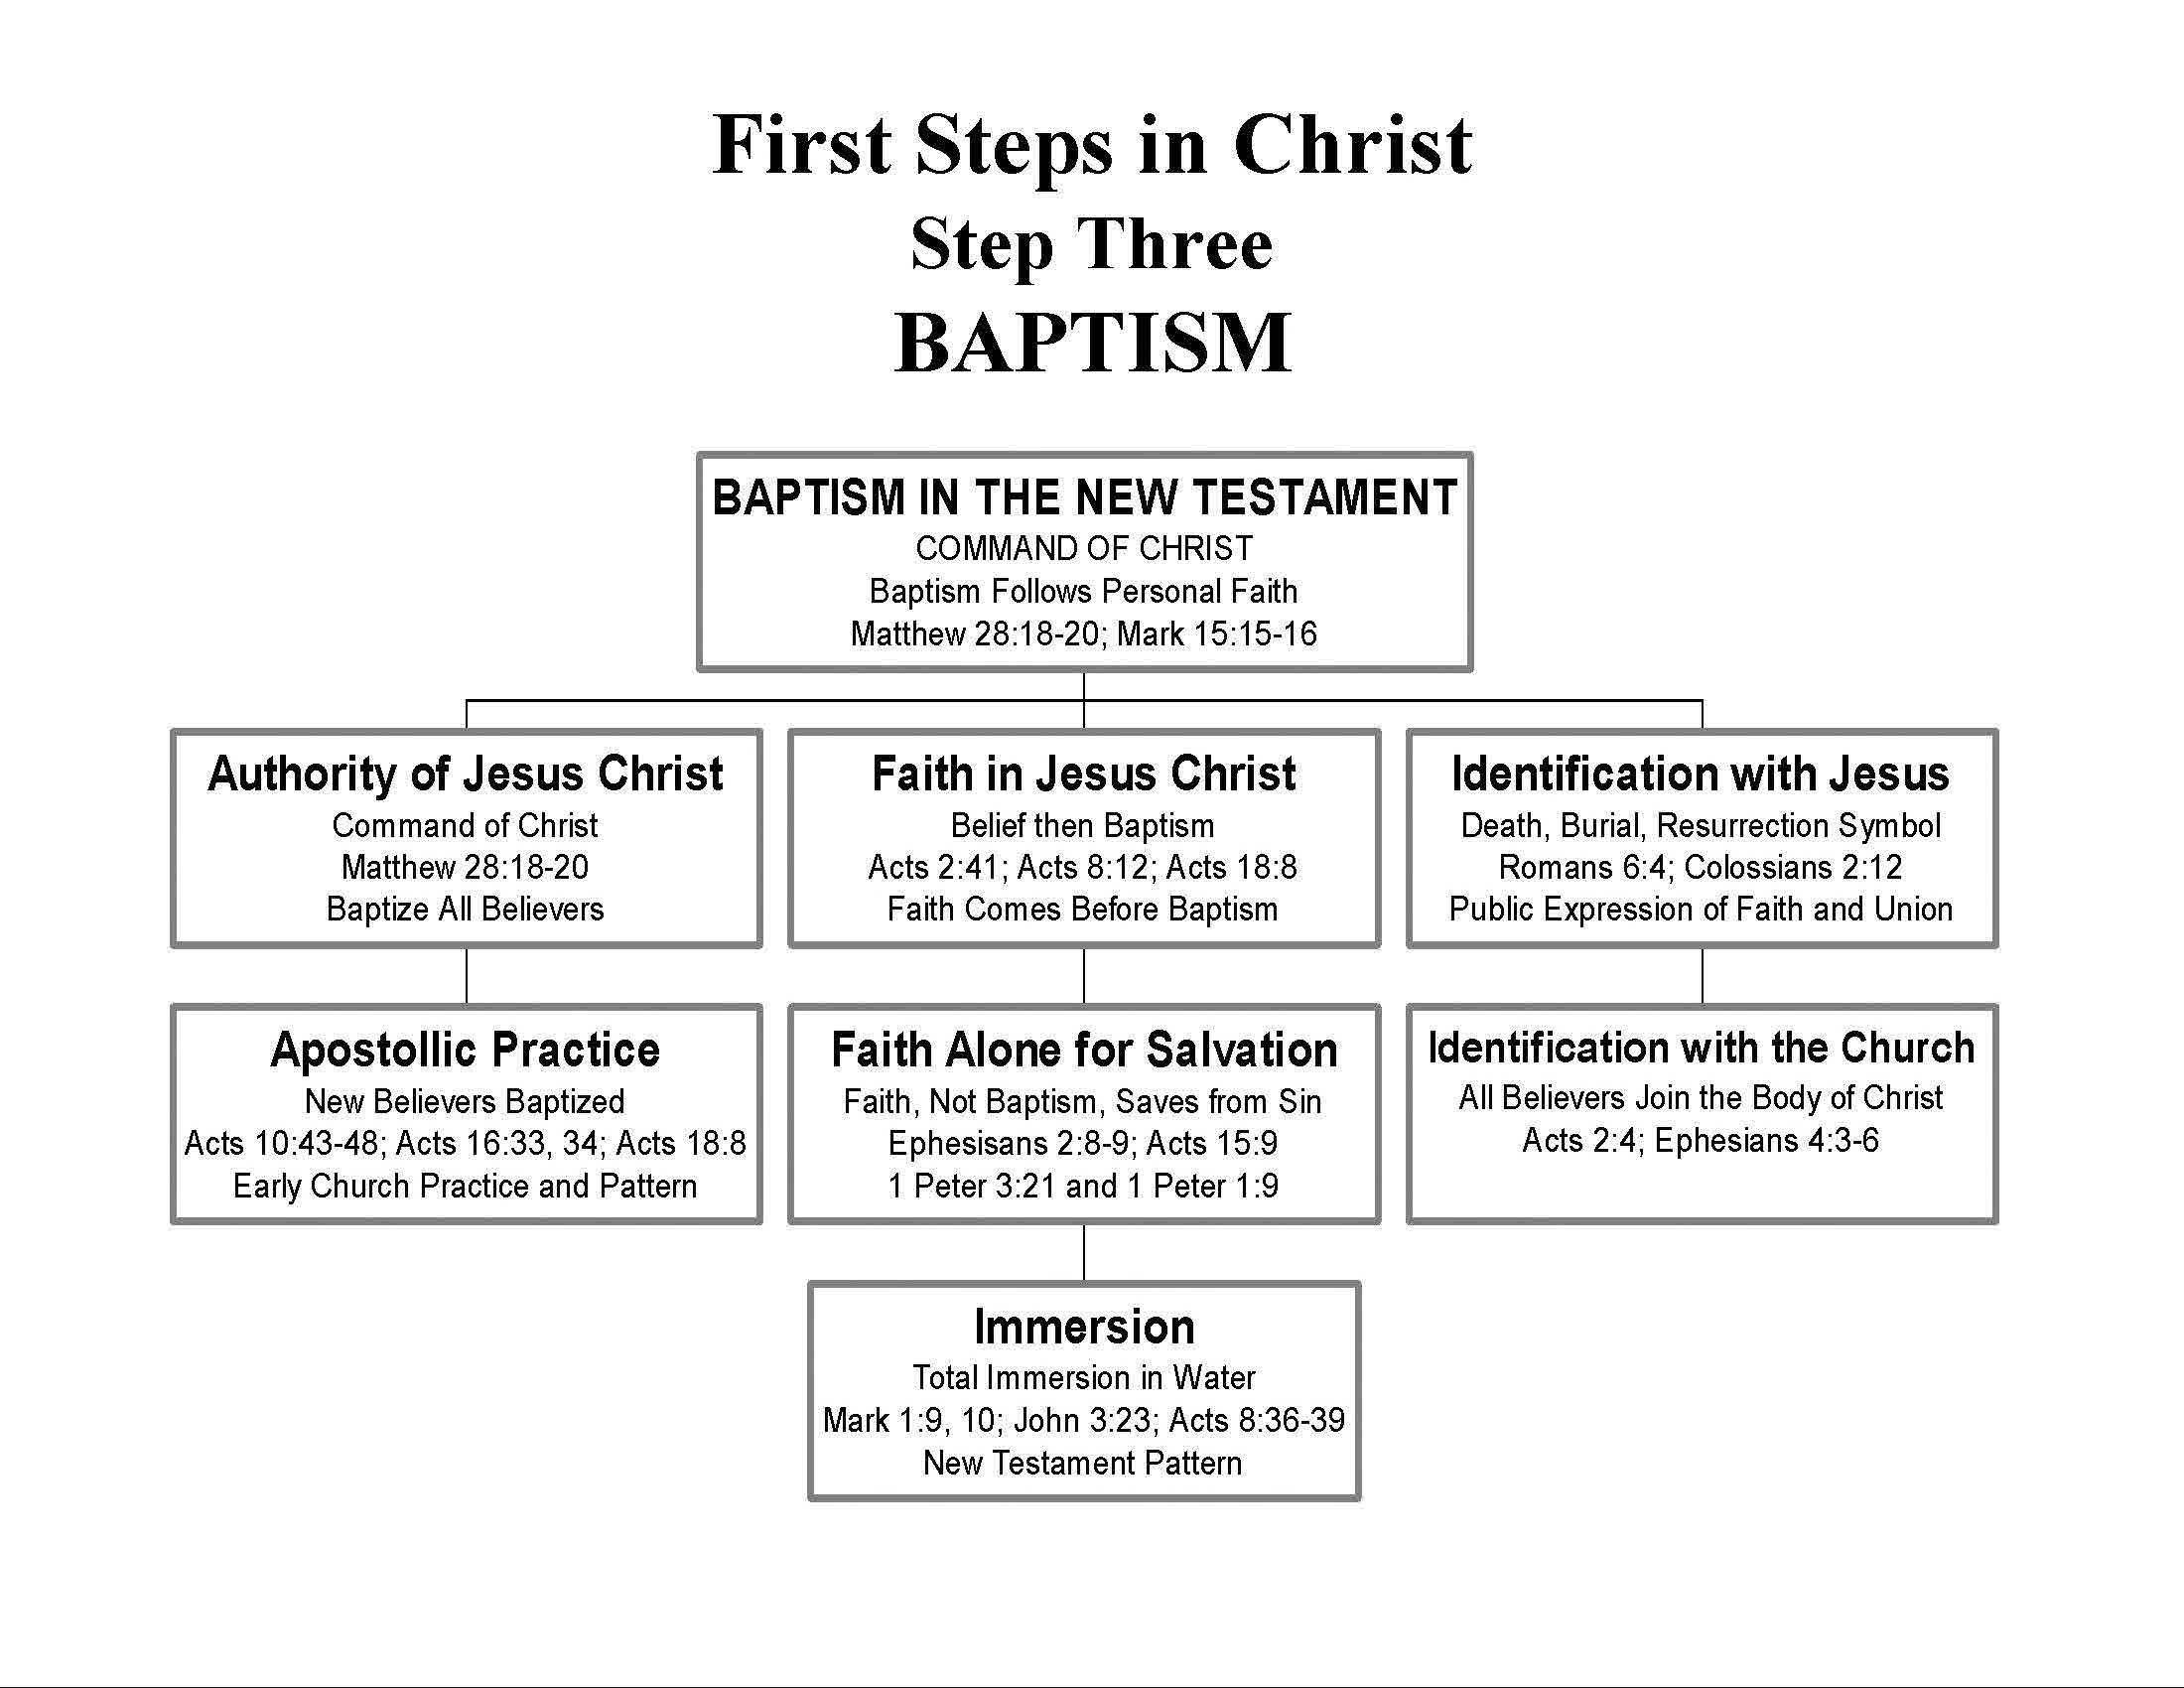 First Steps In Christ Step Three Baptism